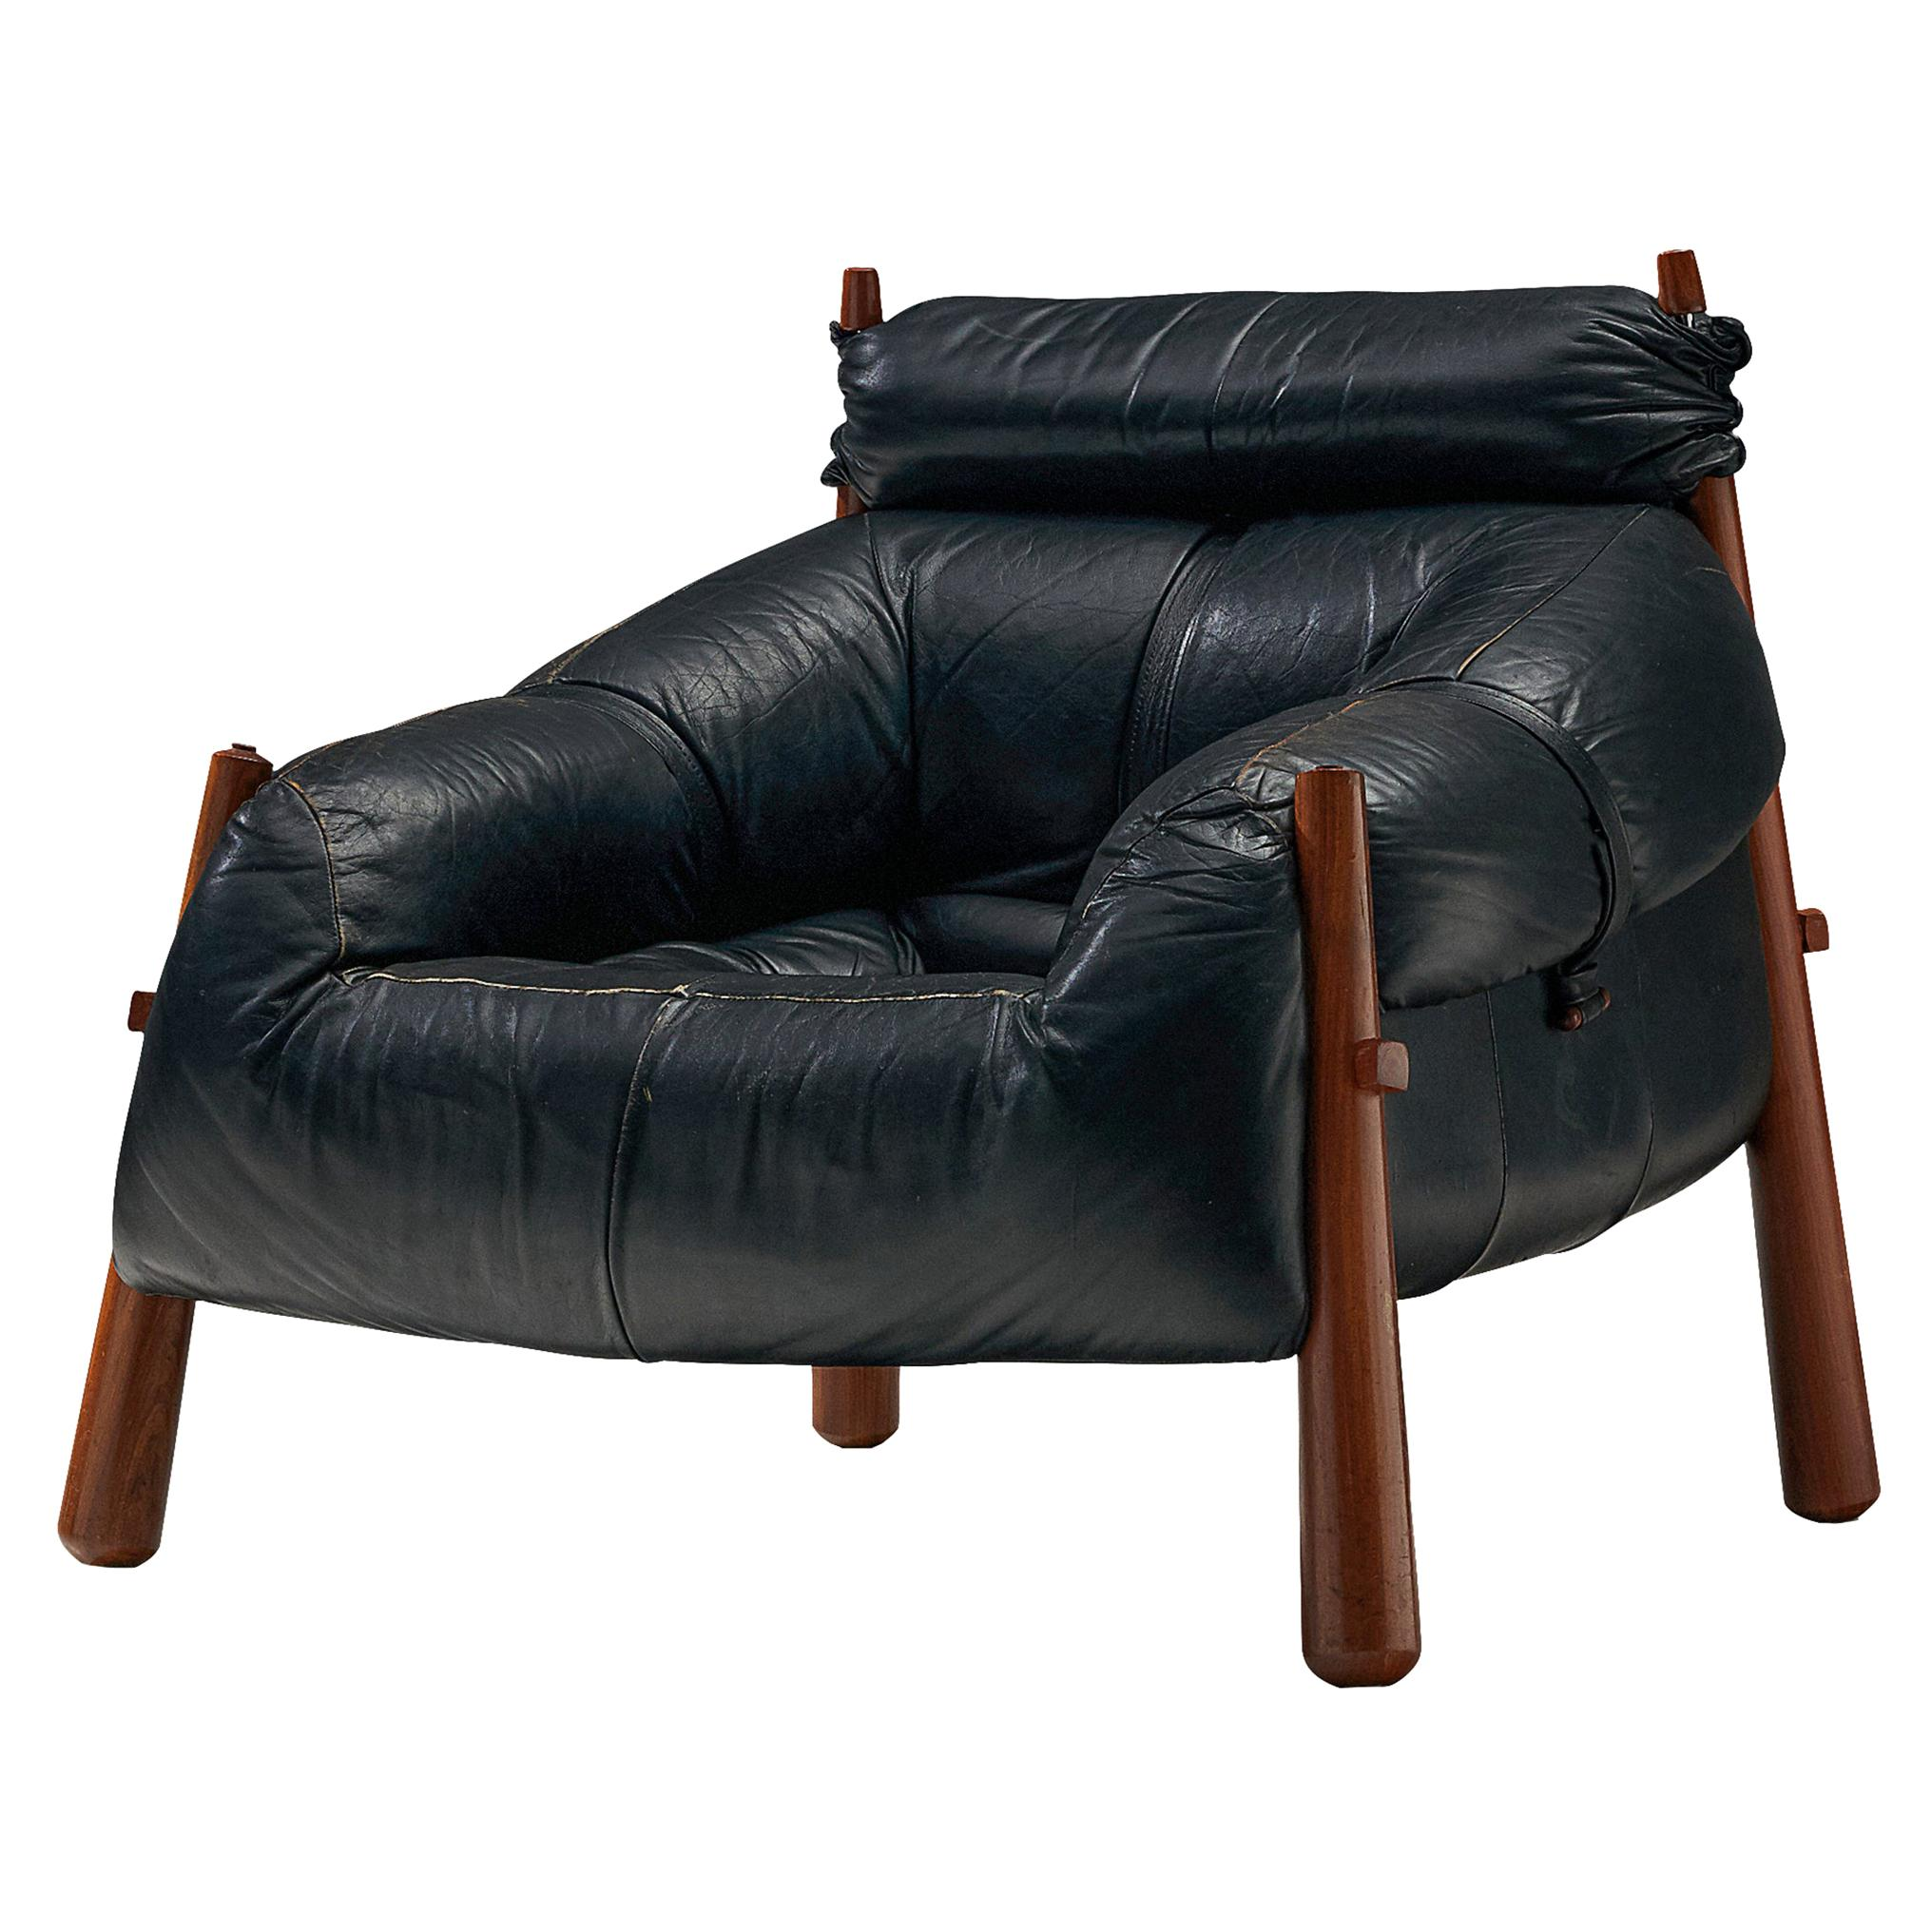 Percival Lafer Easy Chair Model 'MP-81' in Leather